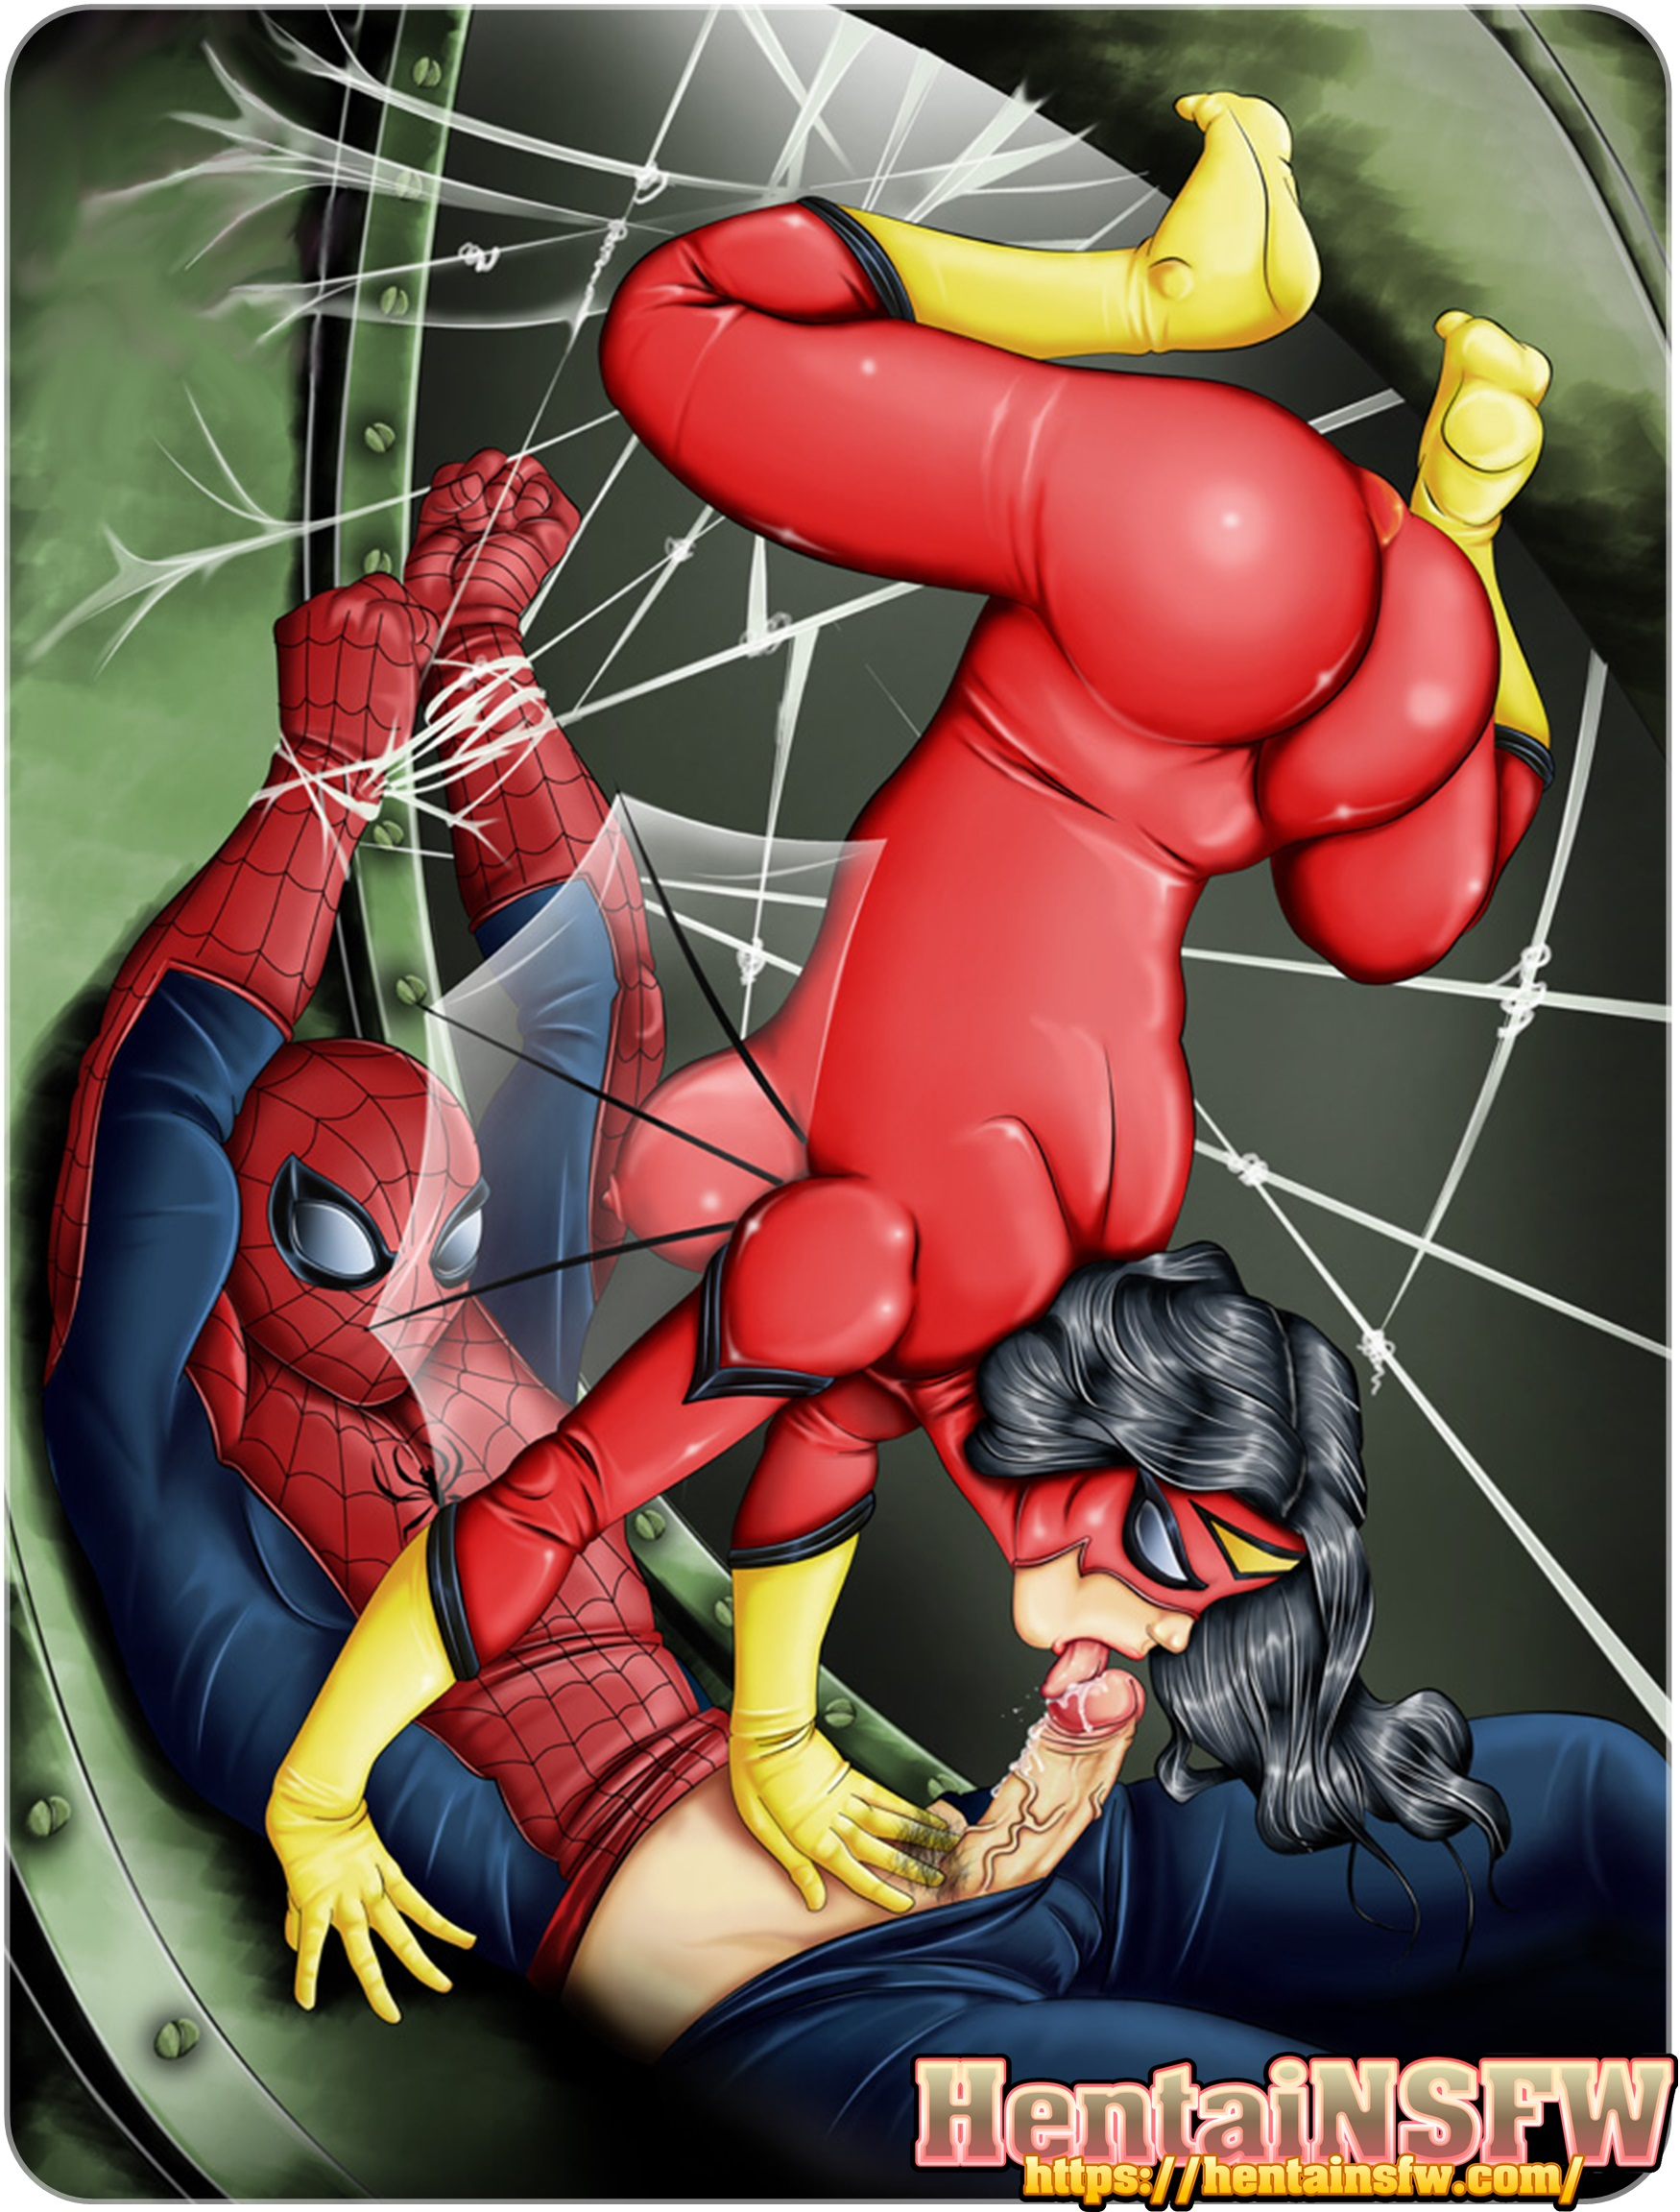 NSFWhentai marvelcomics spiderman spiderwoman cartoonporn